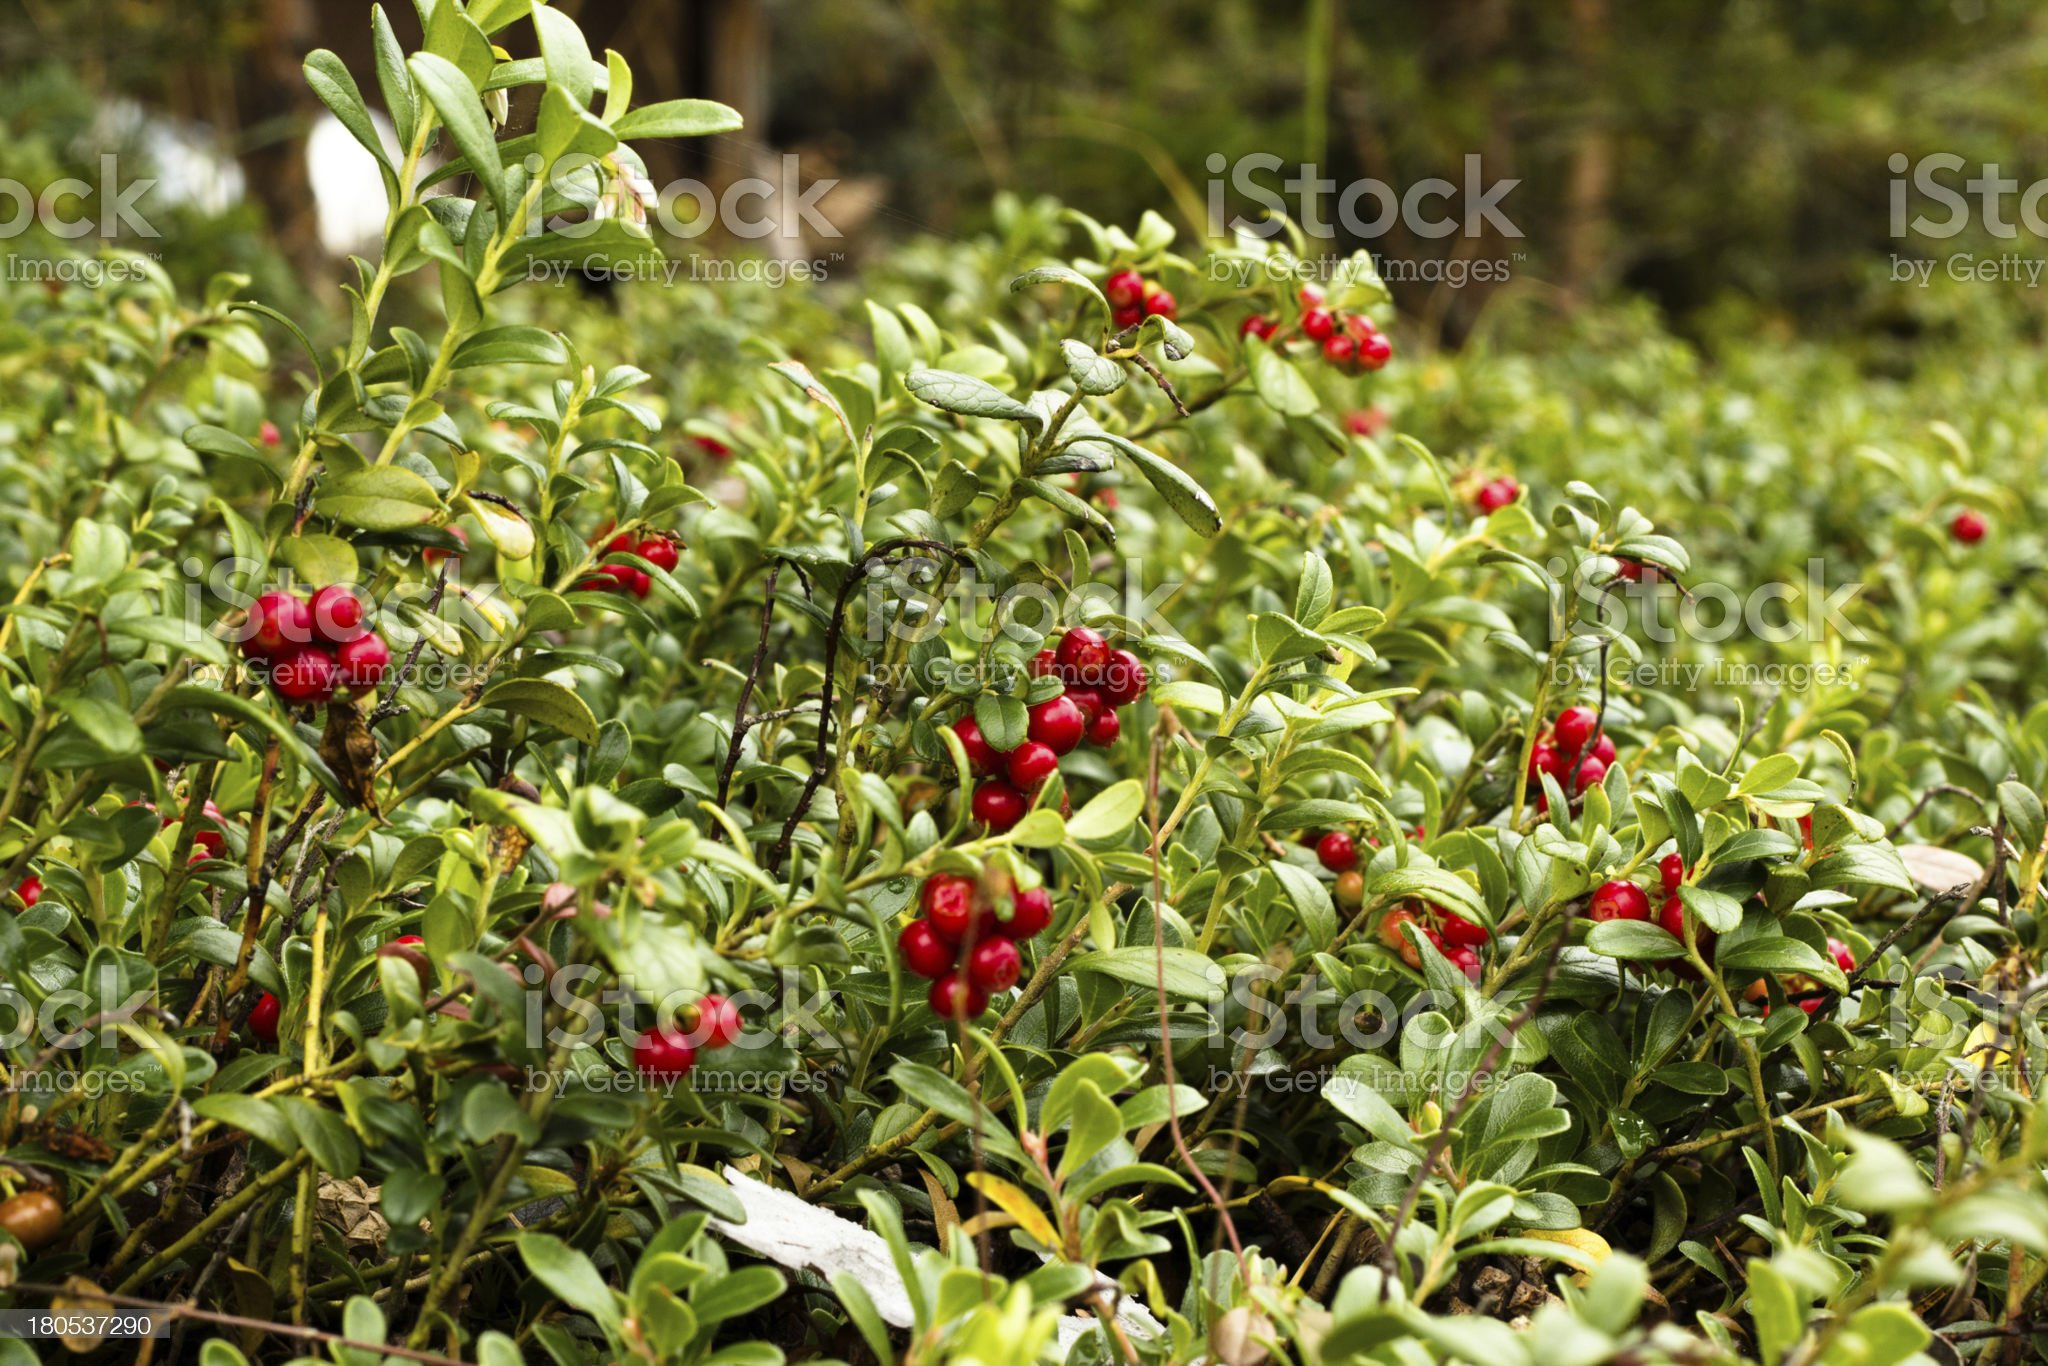 Lingonberries / Cowberries on forest floor royalty-free stock photo